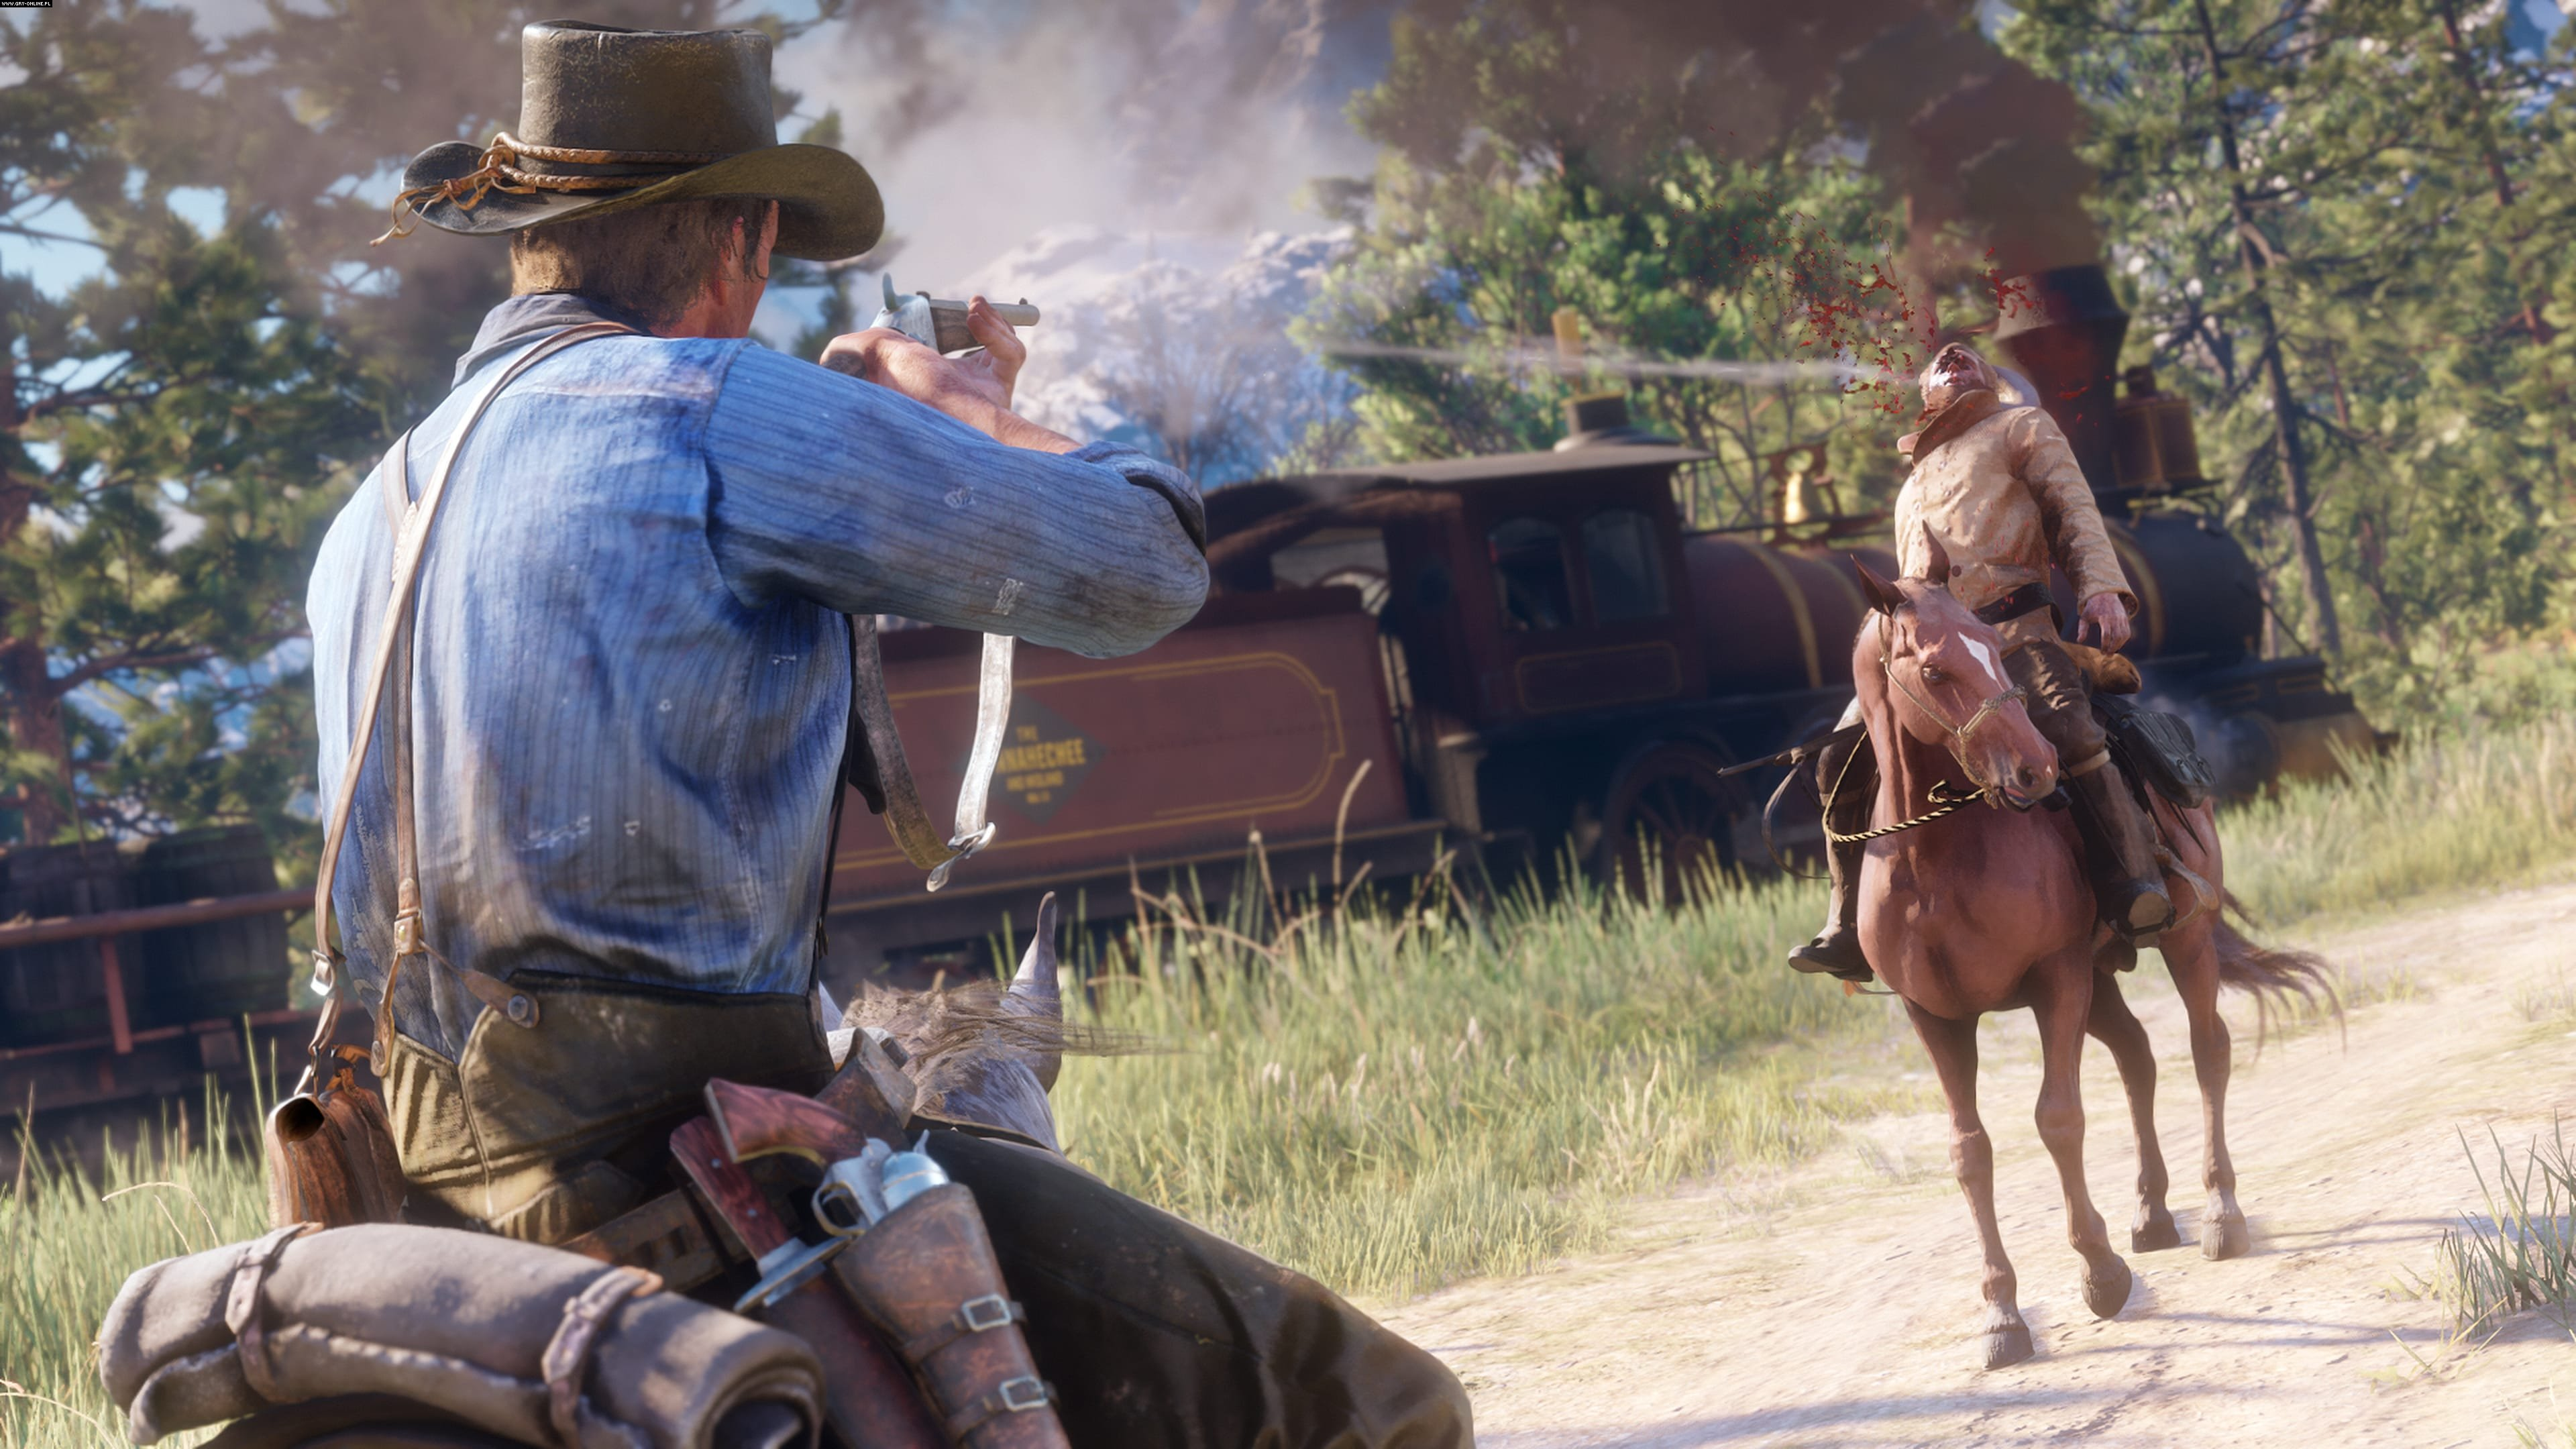 Red Dead Redemption 2 PS4, XONE Games Image 5/111, Rockstar Games